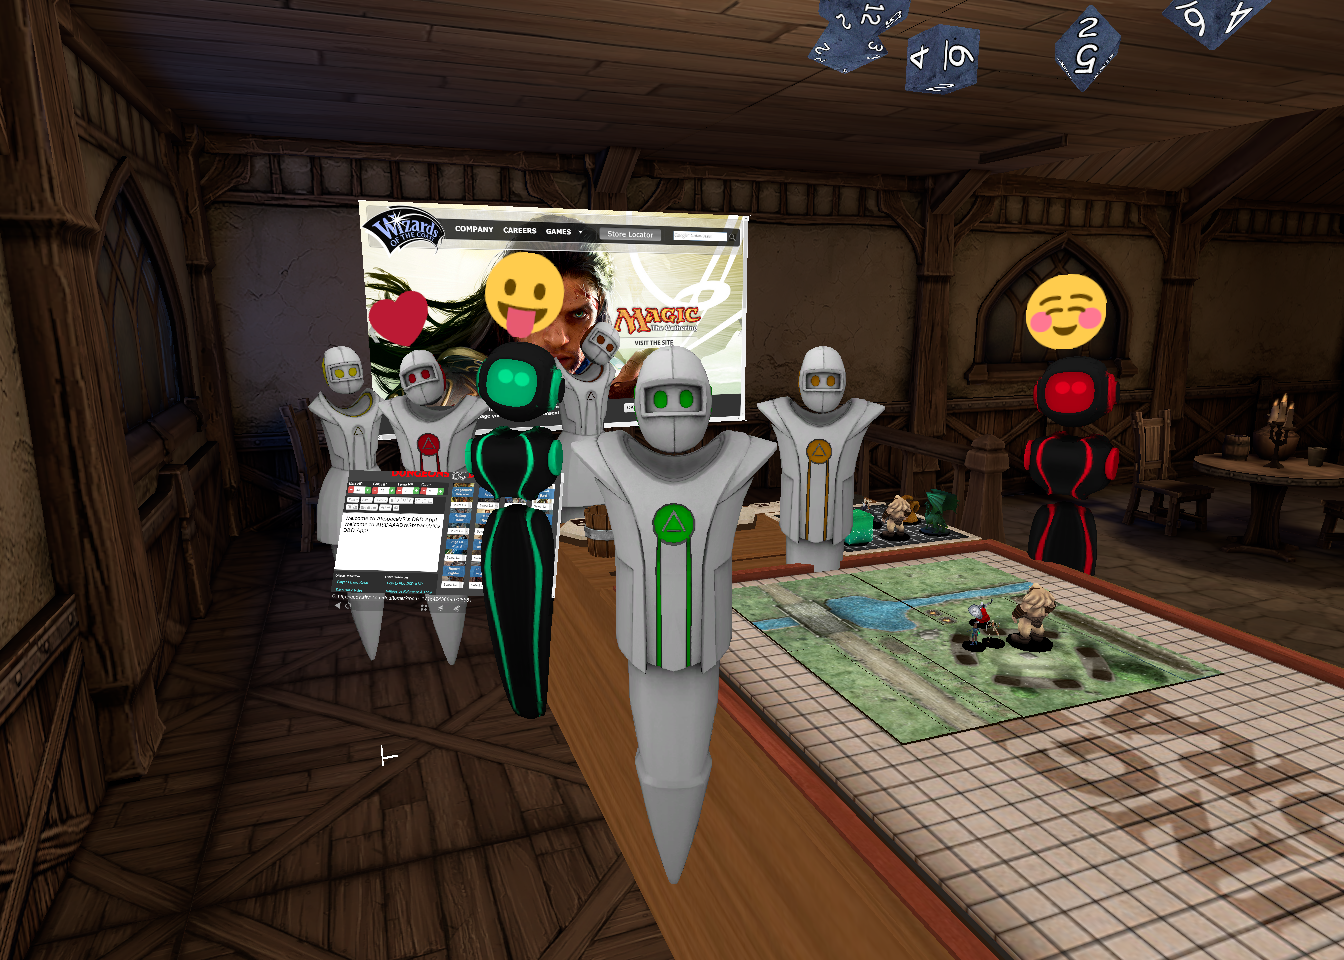 Getting out of the garage and into VR with 'Dungeons and Dragons'